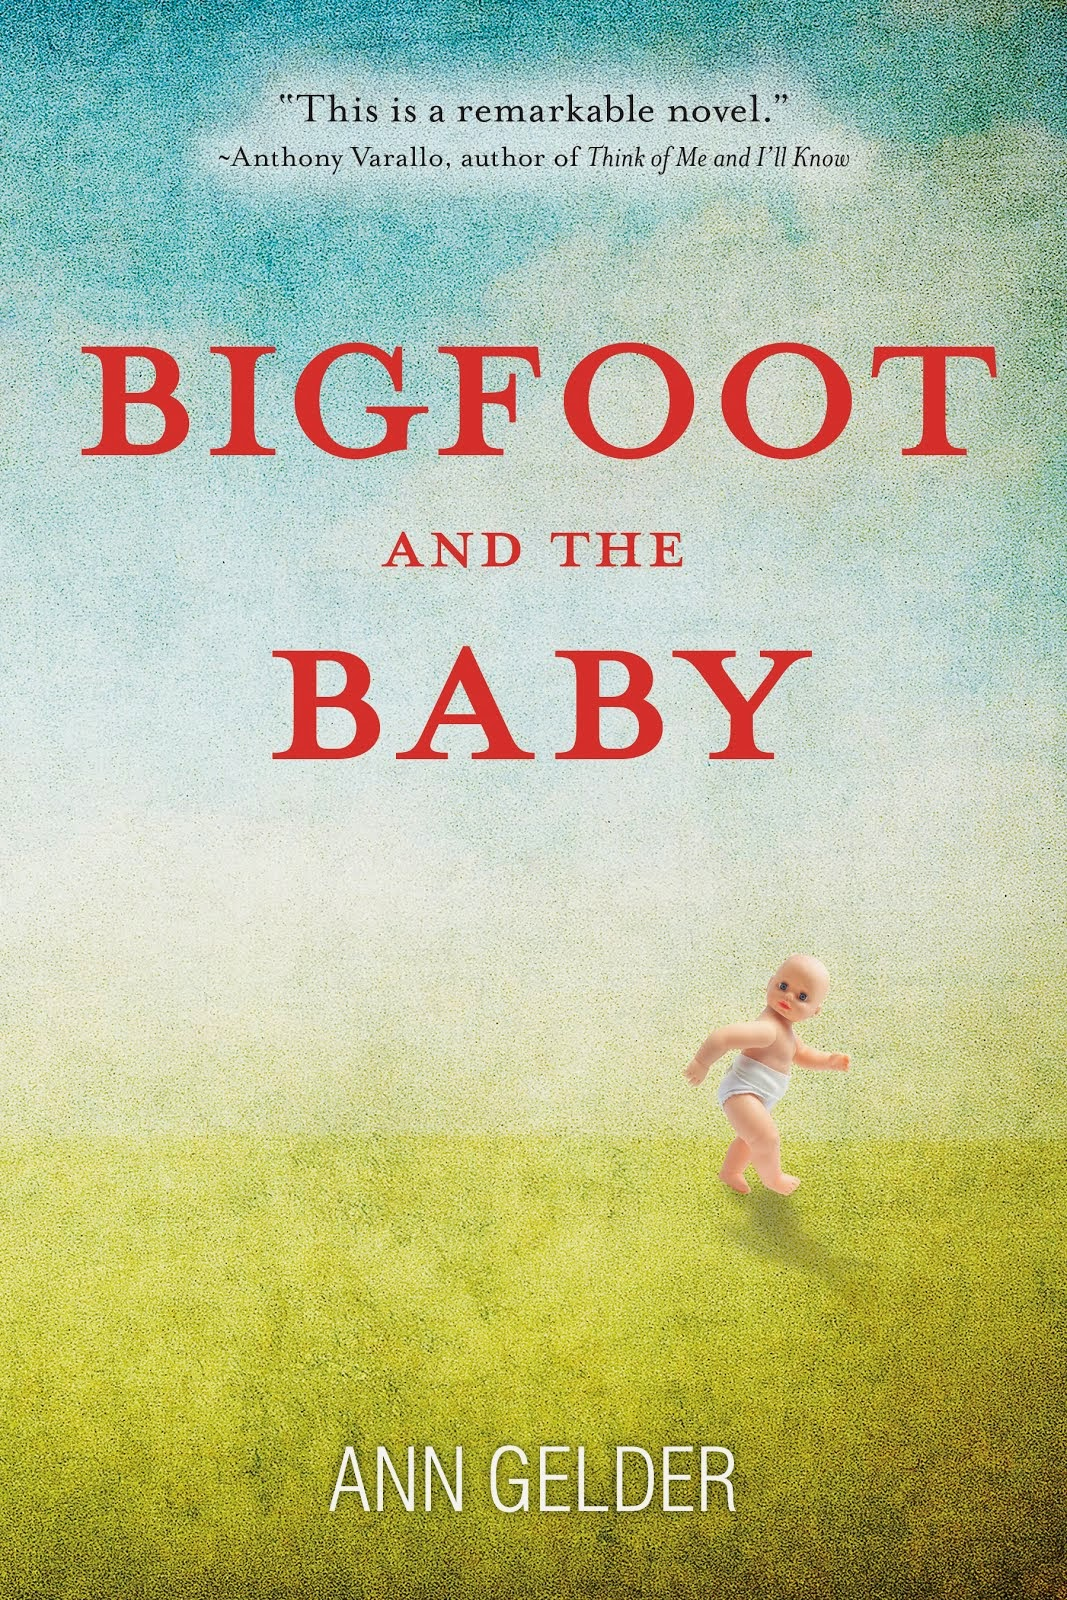 Bigfoot and the Baby: Yes, it can be yours.